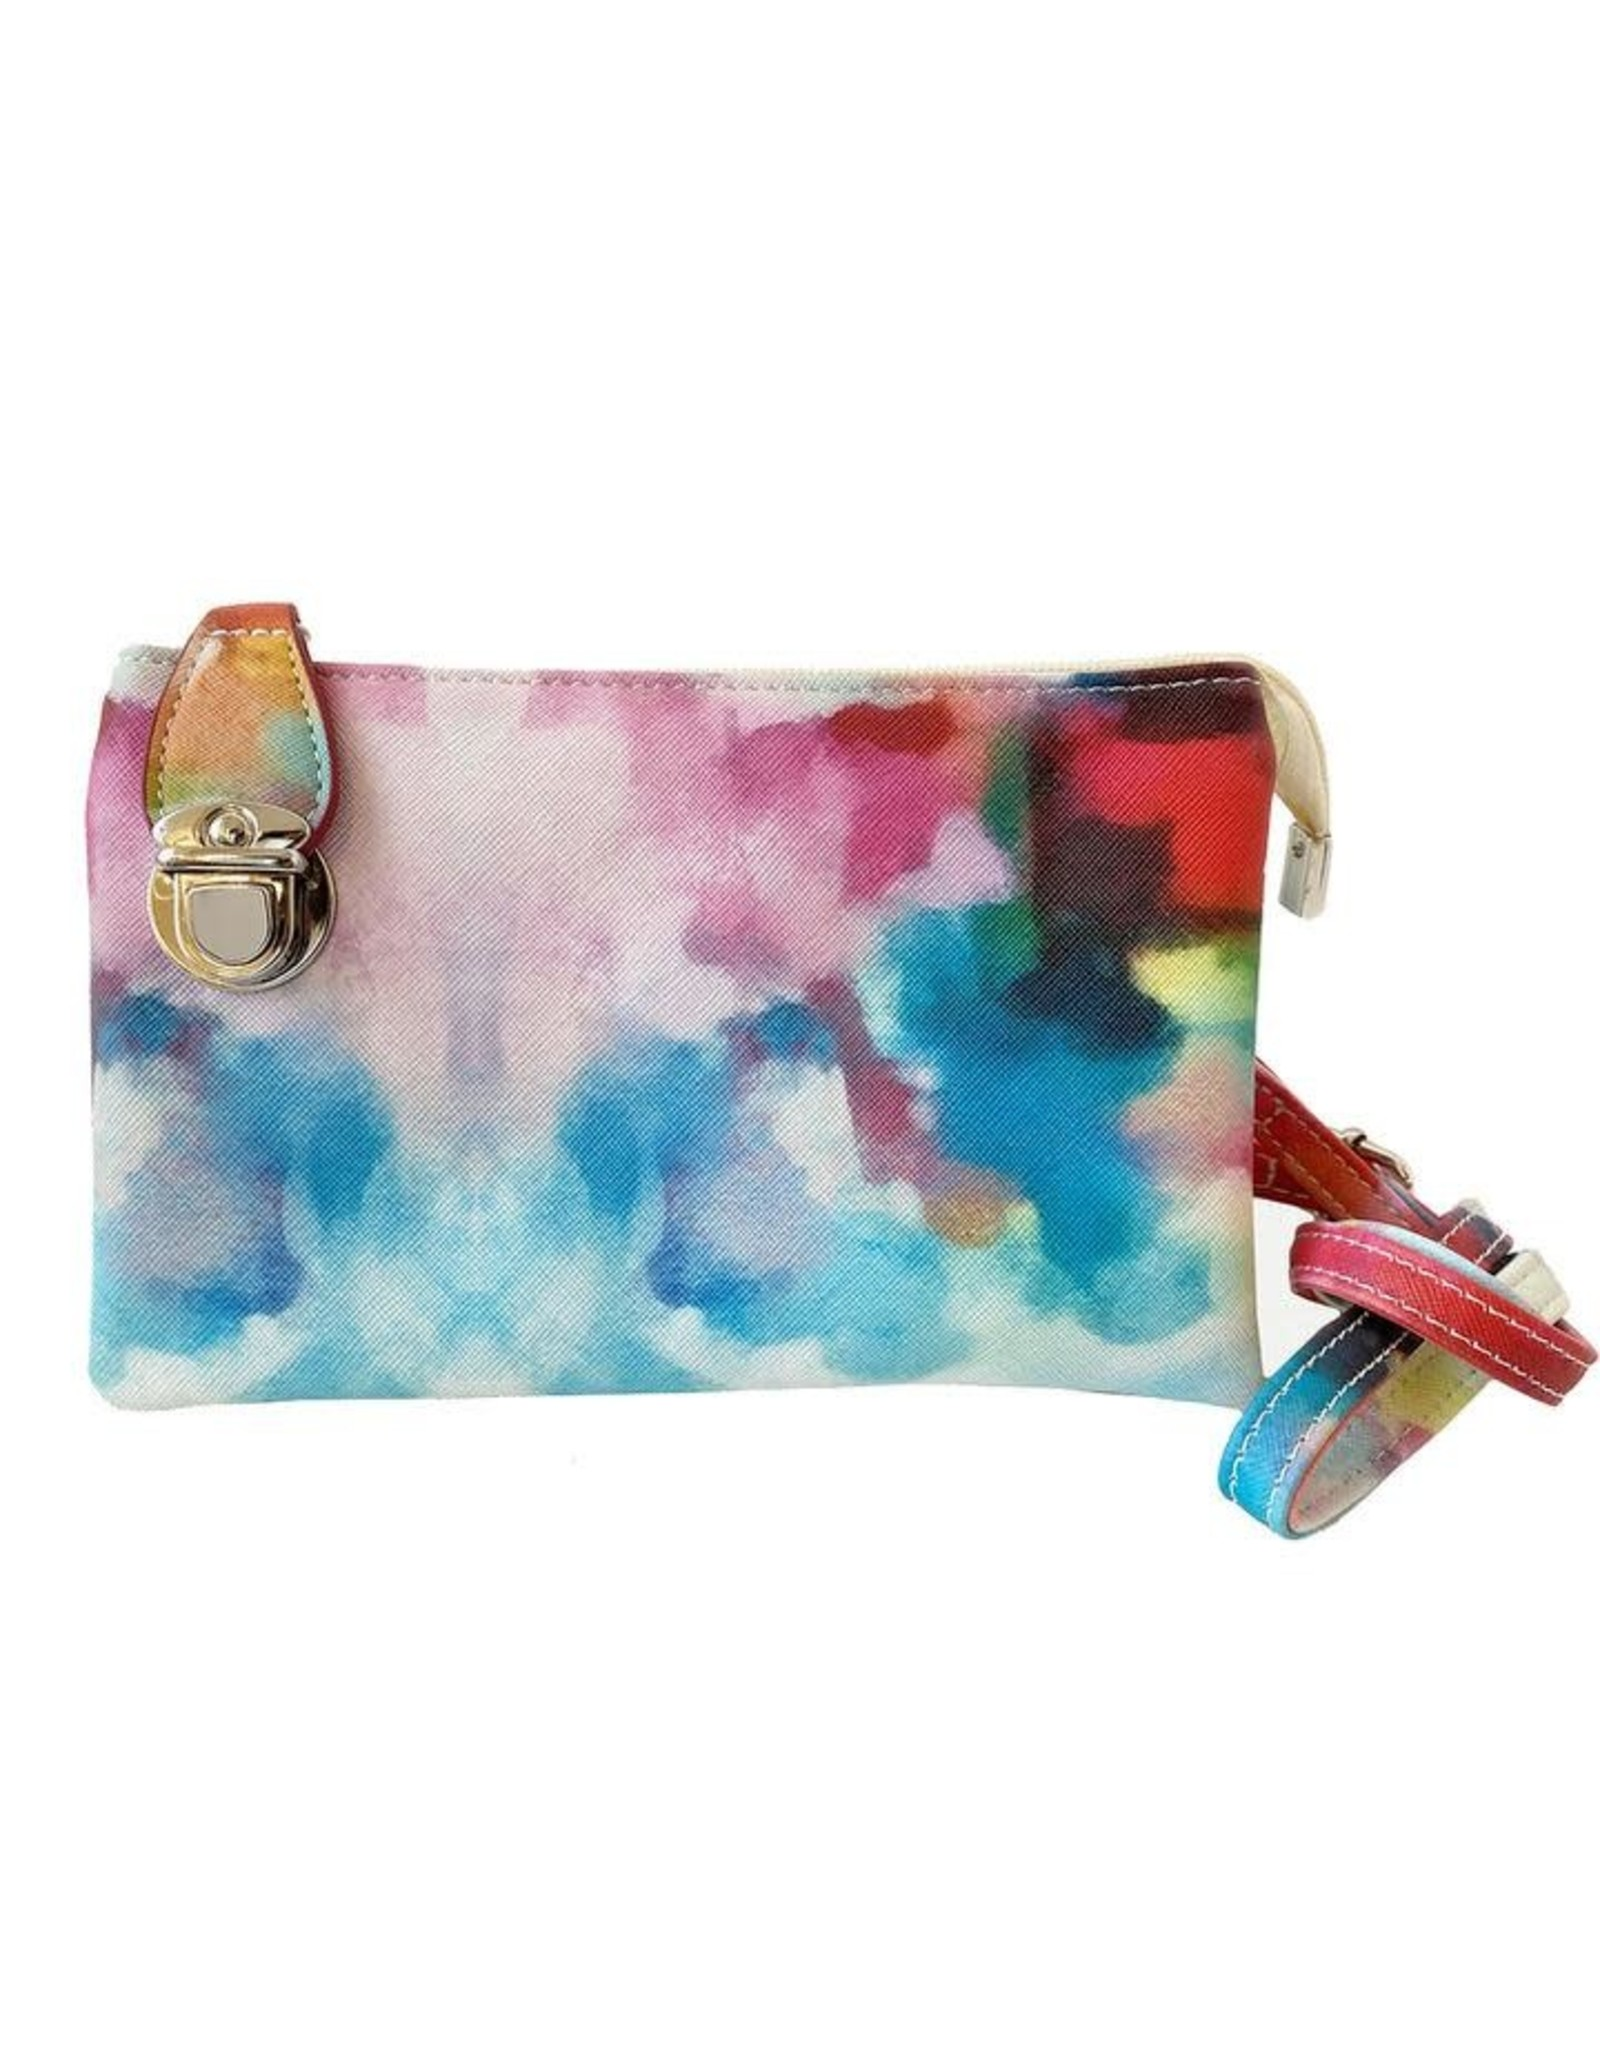 Buckle Clutch with Cross Body Strap - Multi